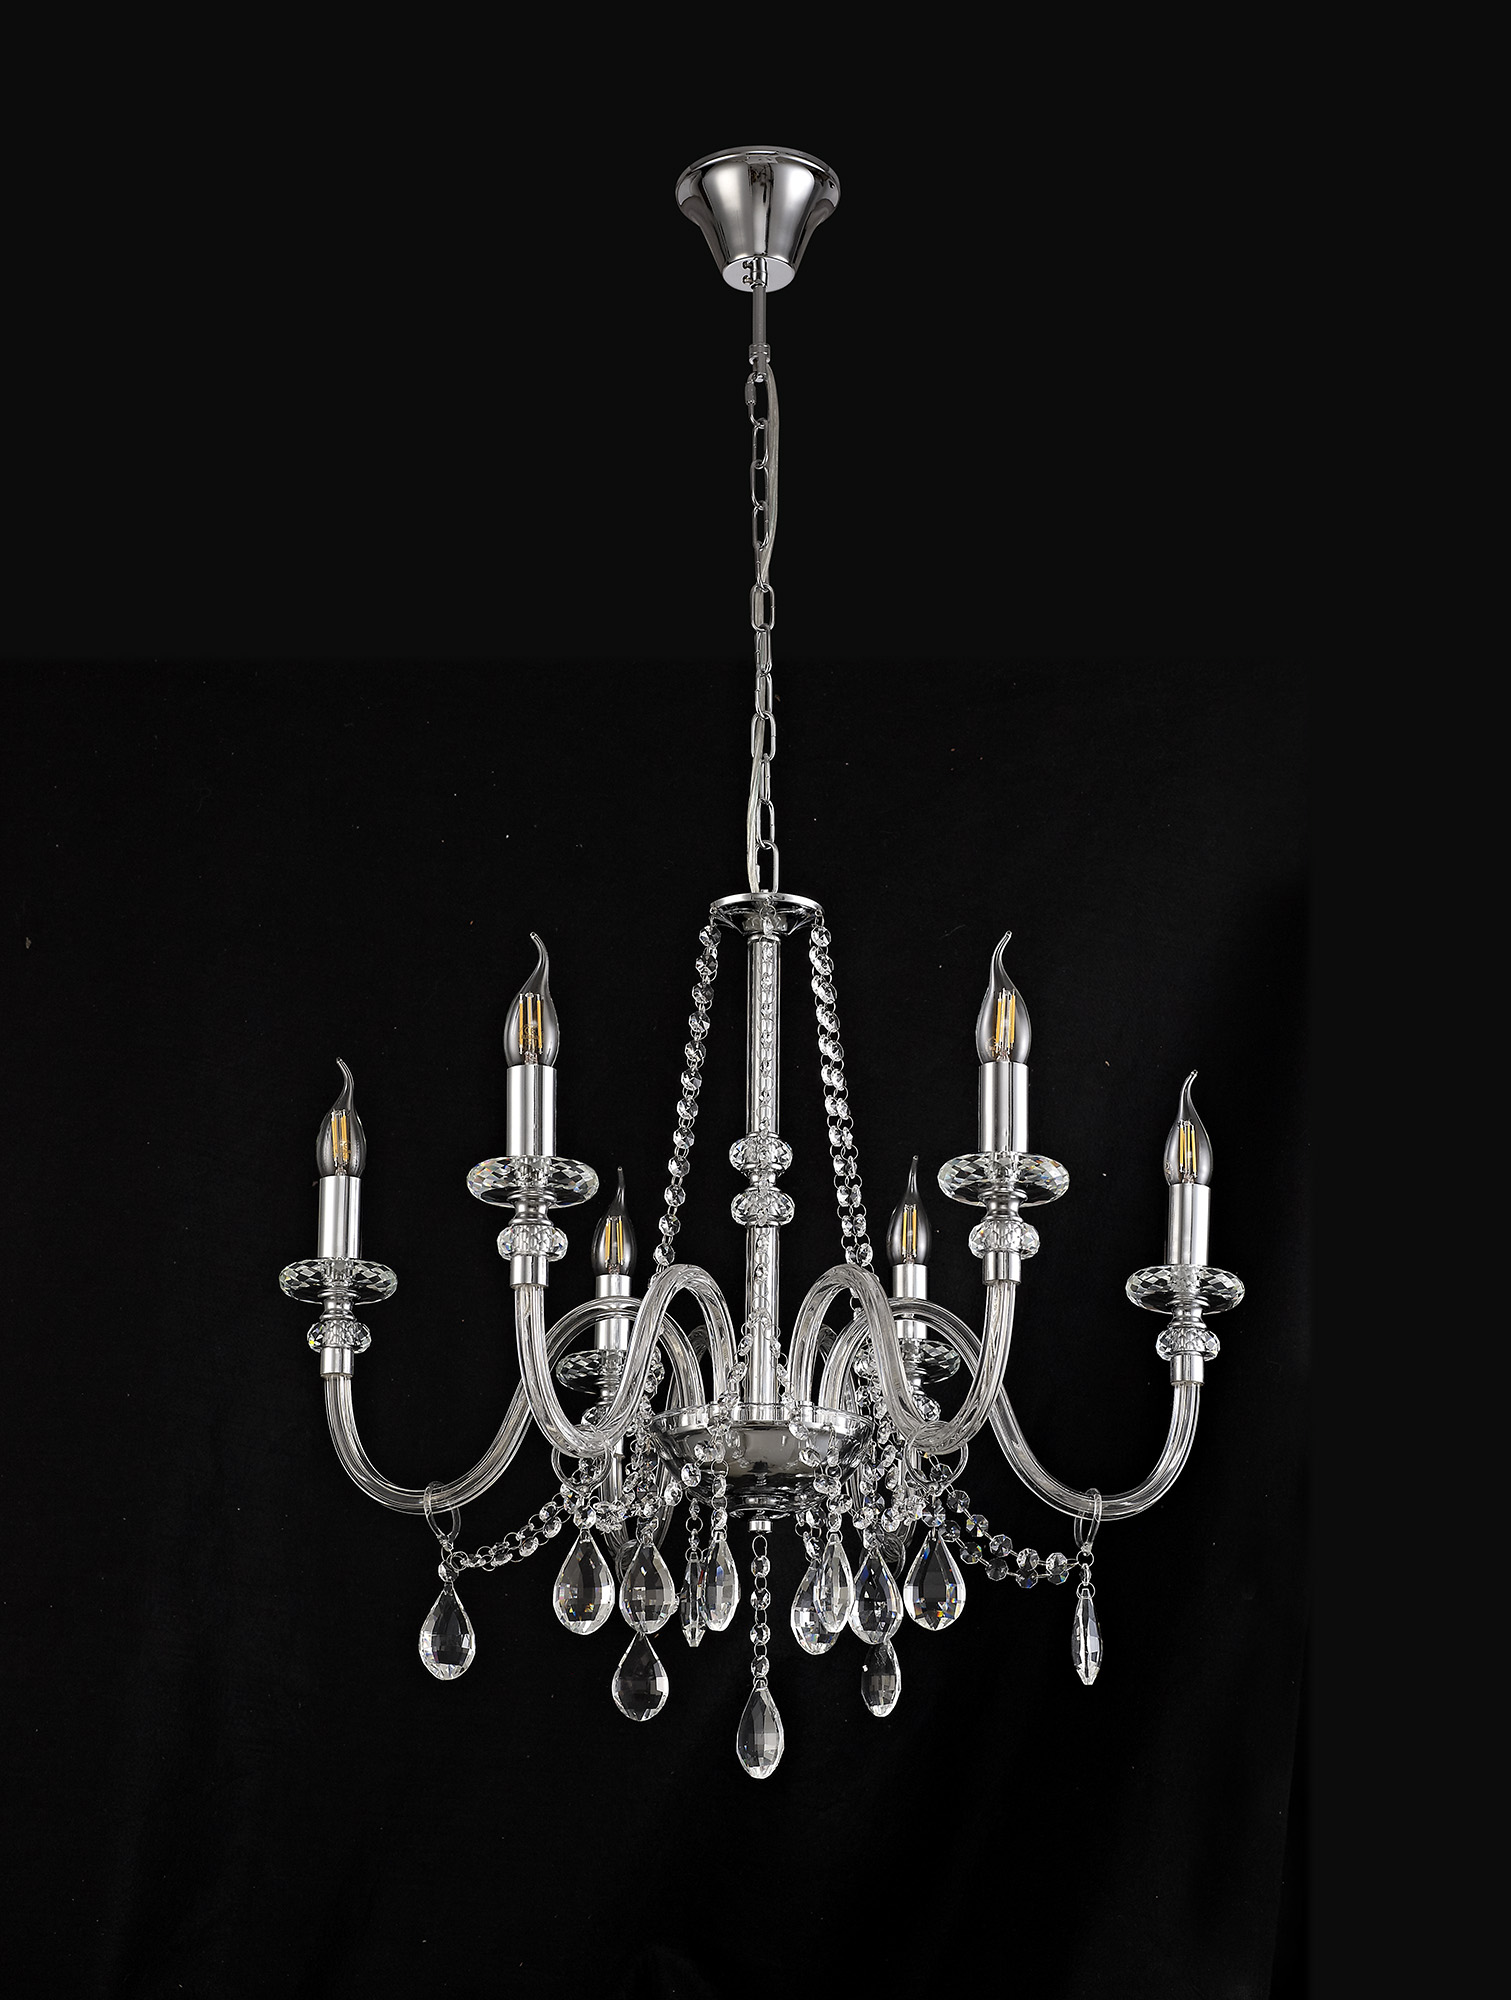 Chandelier Pendant, 6 Light E14, Polished Chrome/Clear Glass/Crystal, (ITEM REQUIRES CONSTRUCTION/CONNECTION)